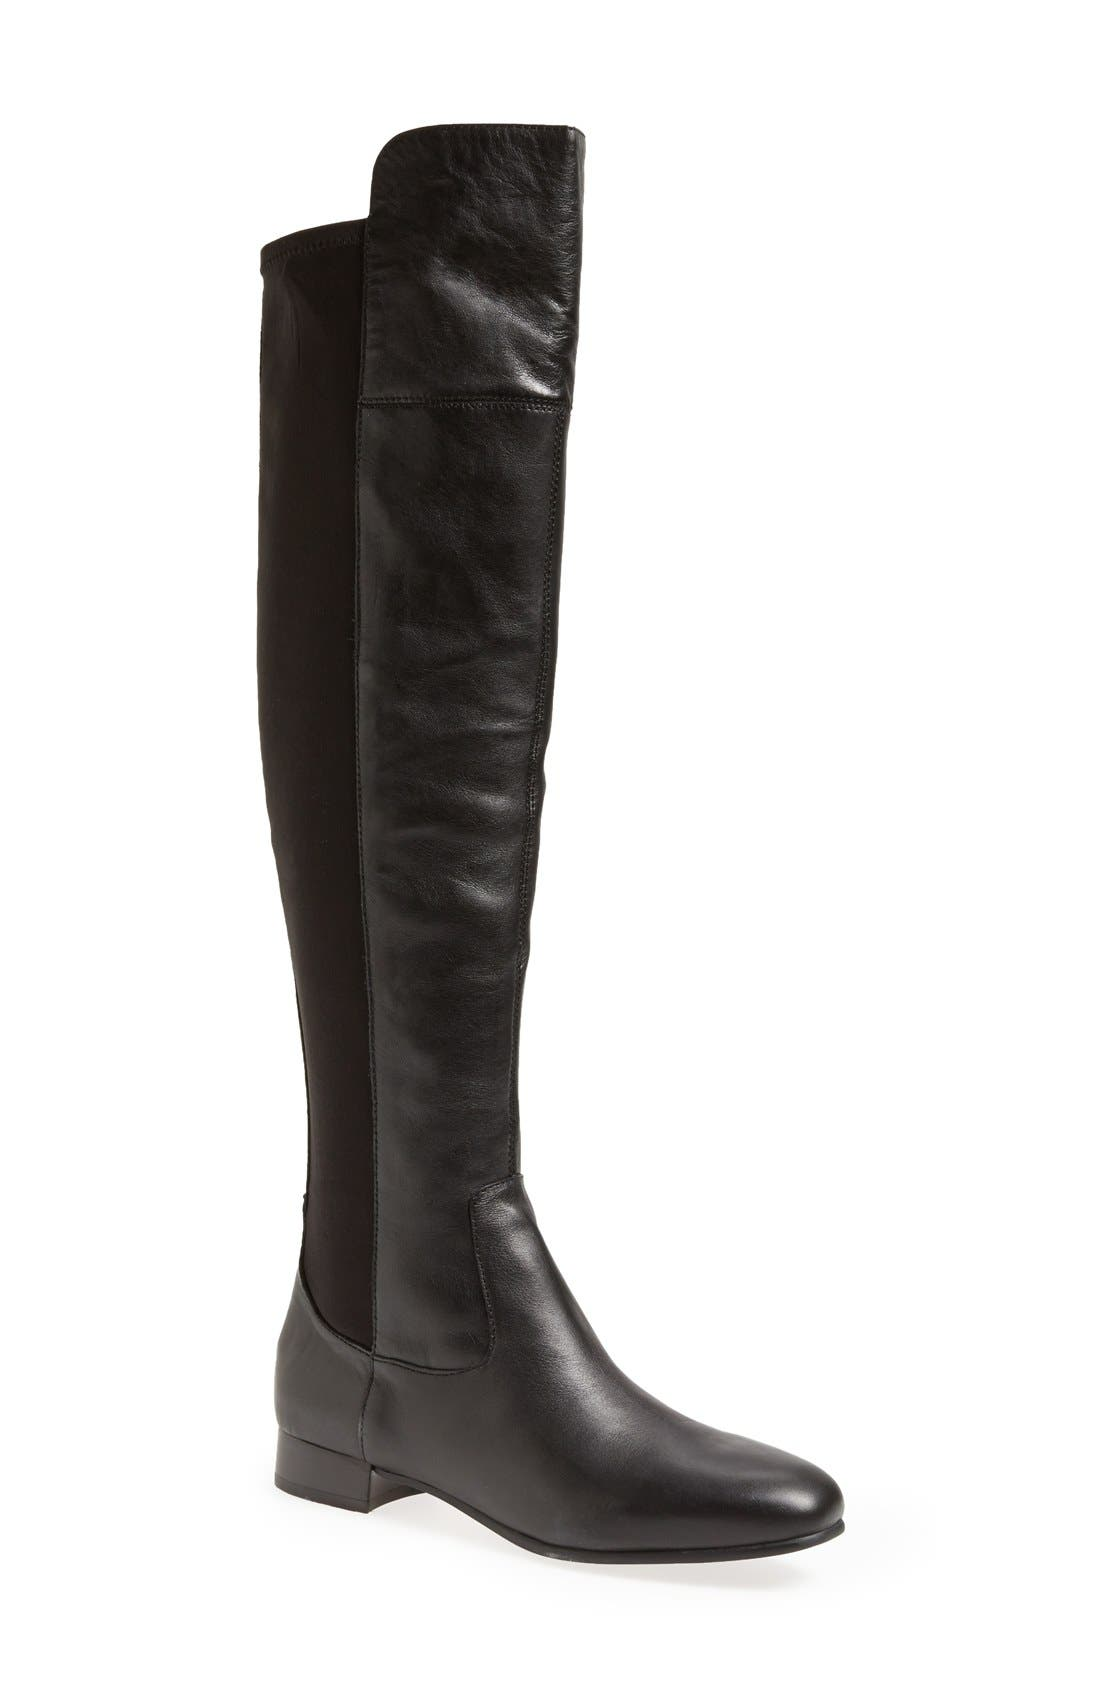 Main Image - Louise et Cie 'Andora' Over the Knee Boot (Women)